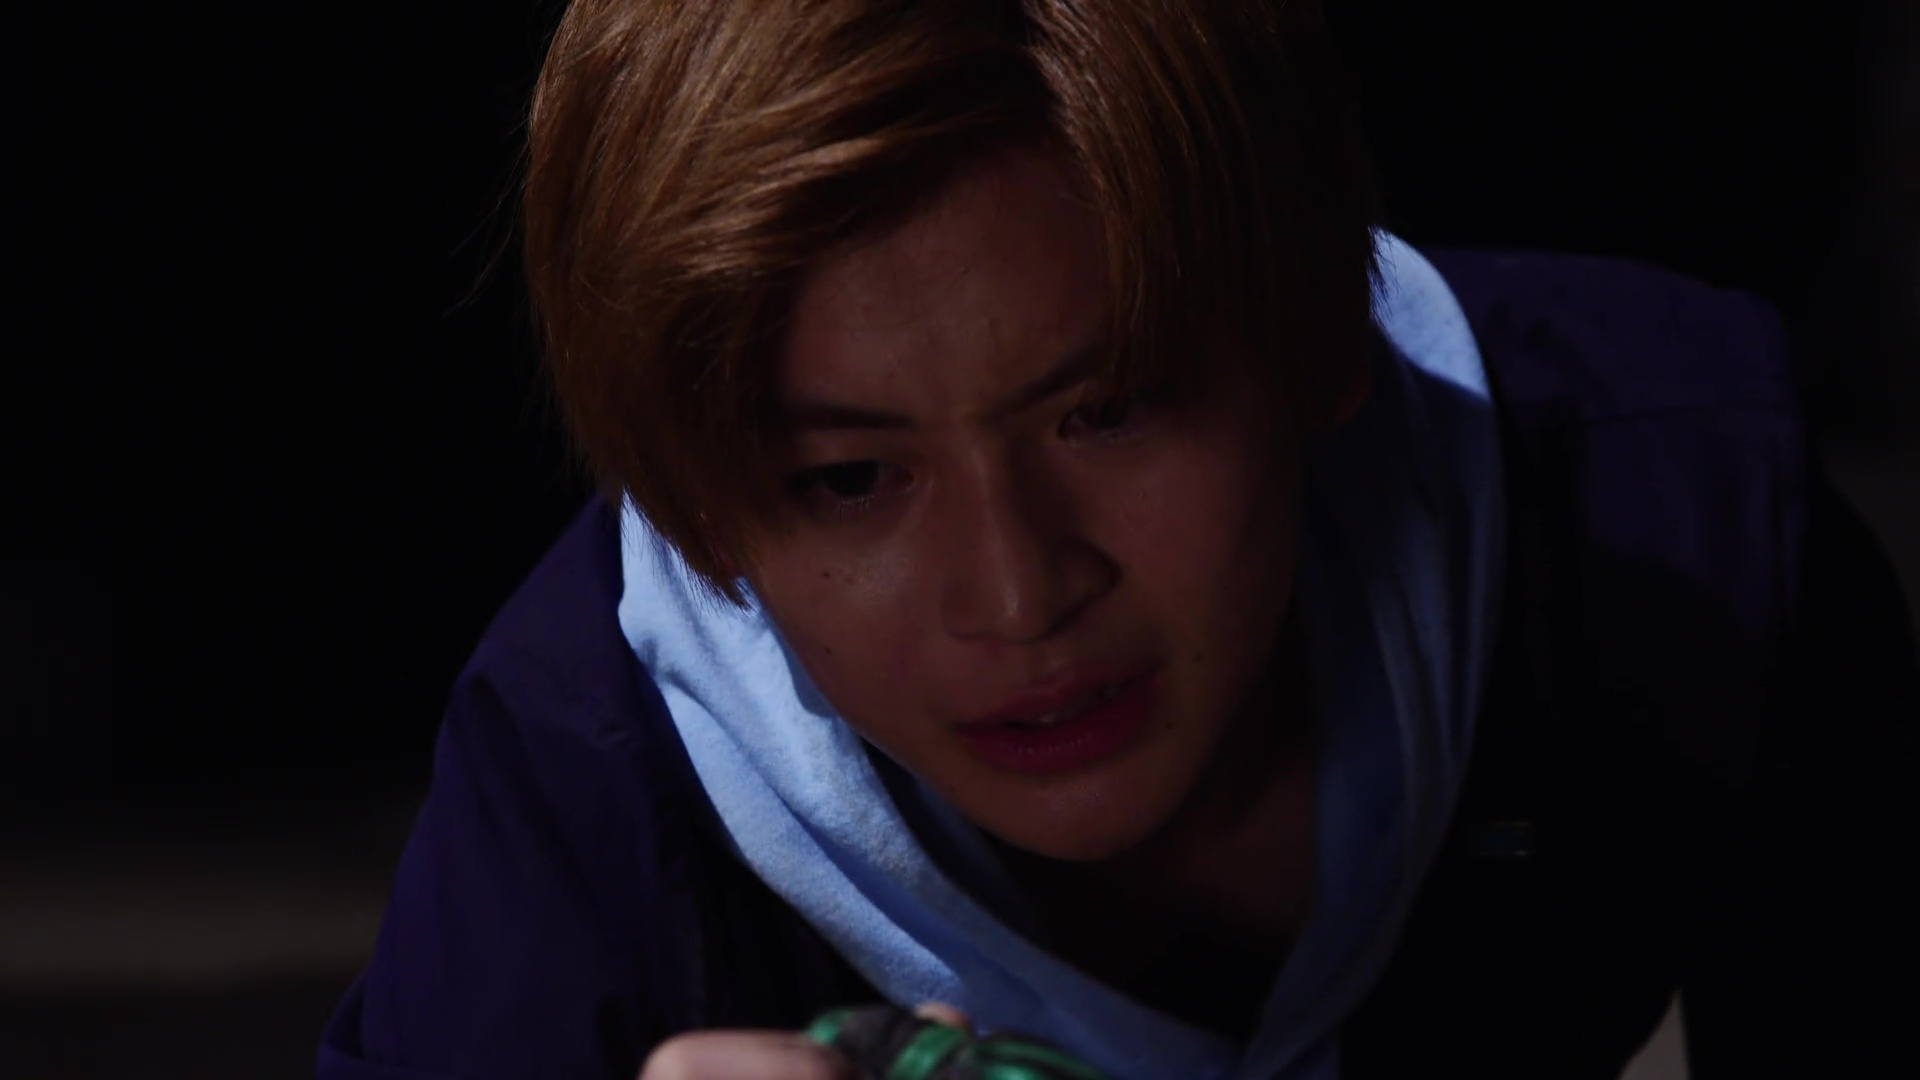 Kamen Rider Zero One Episode 42 Recap